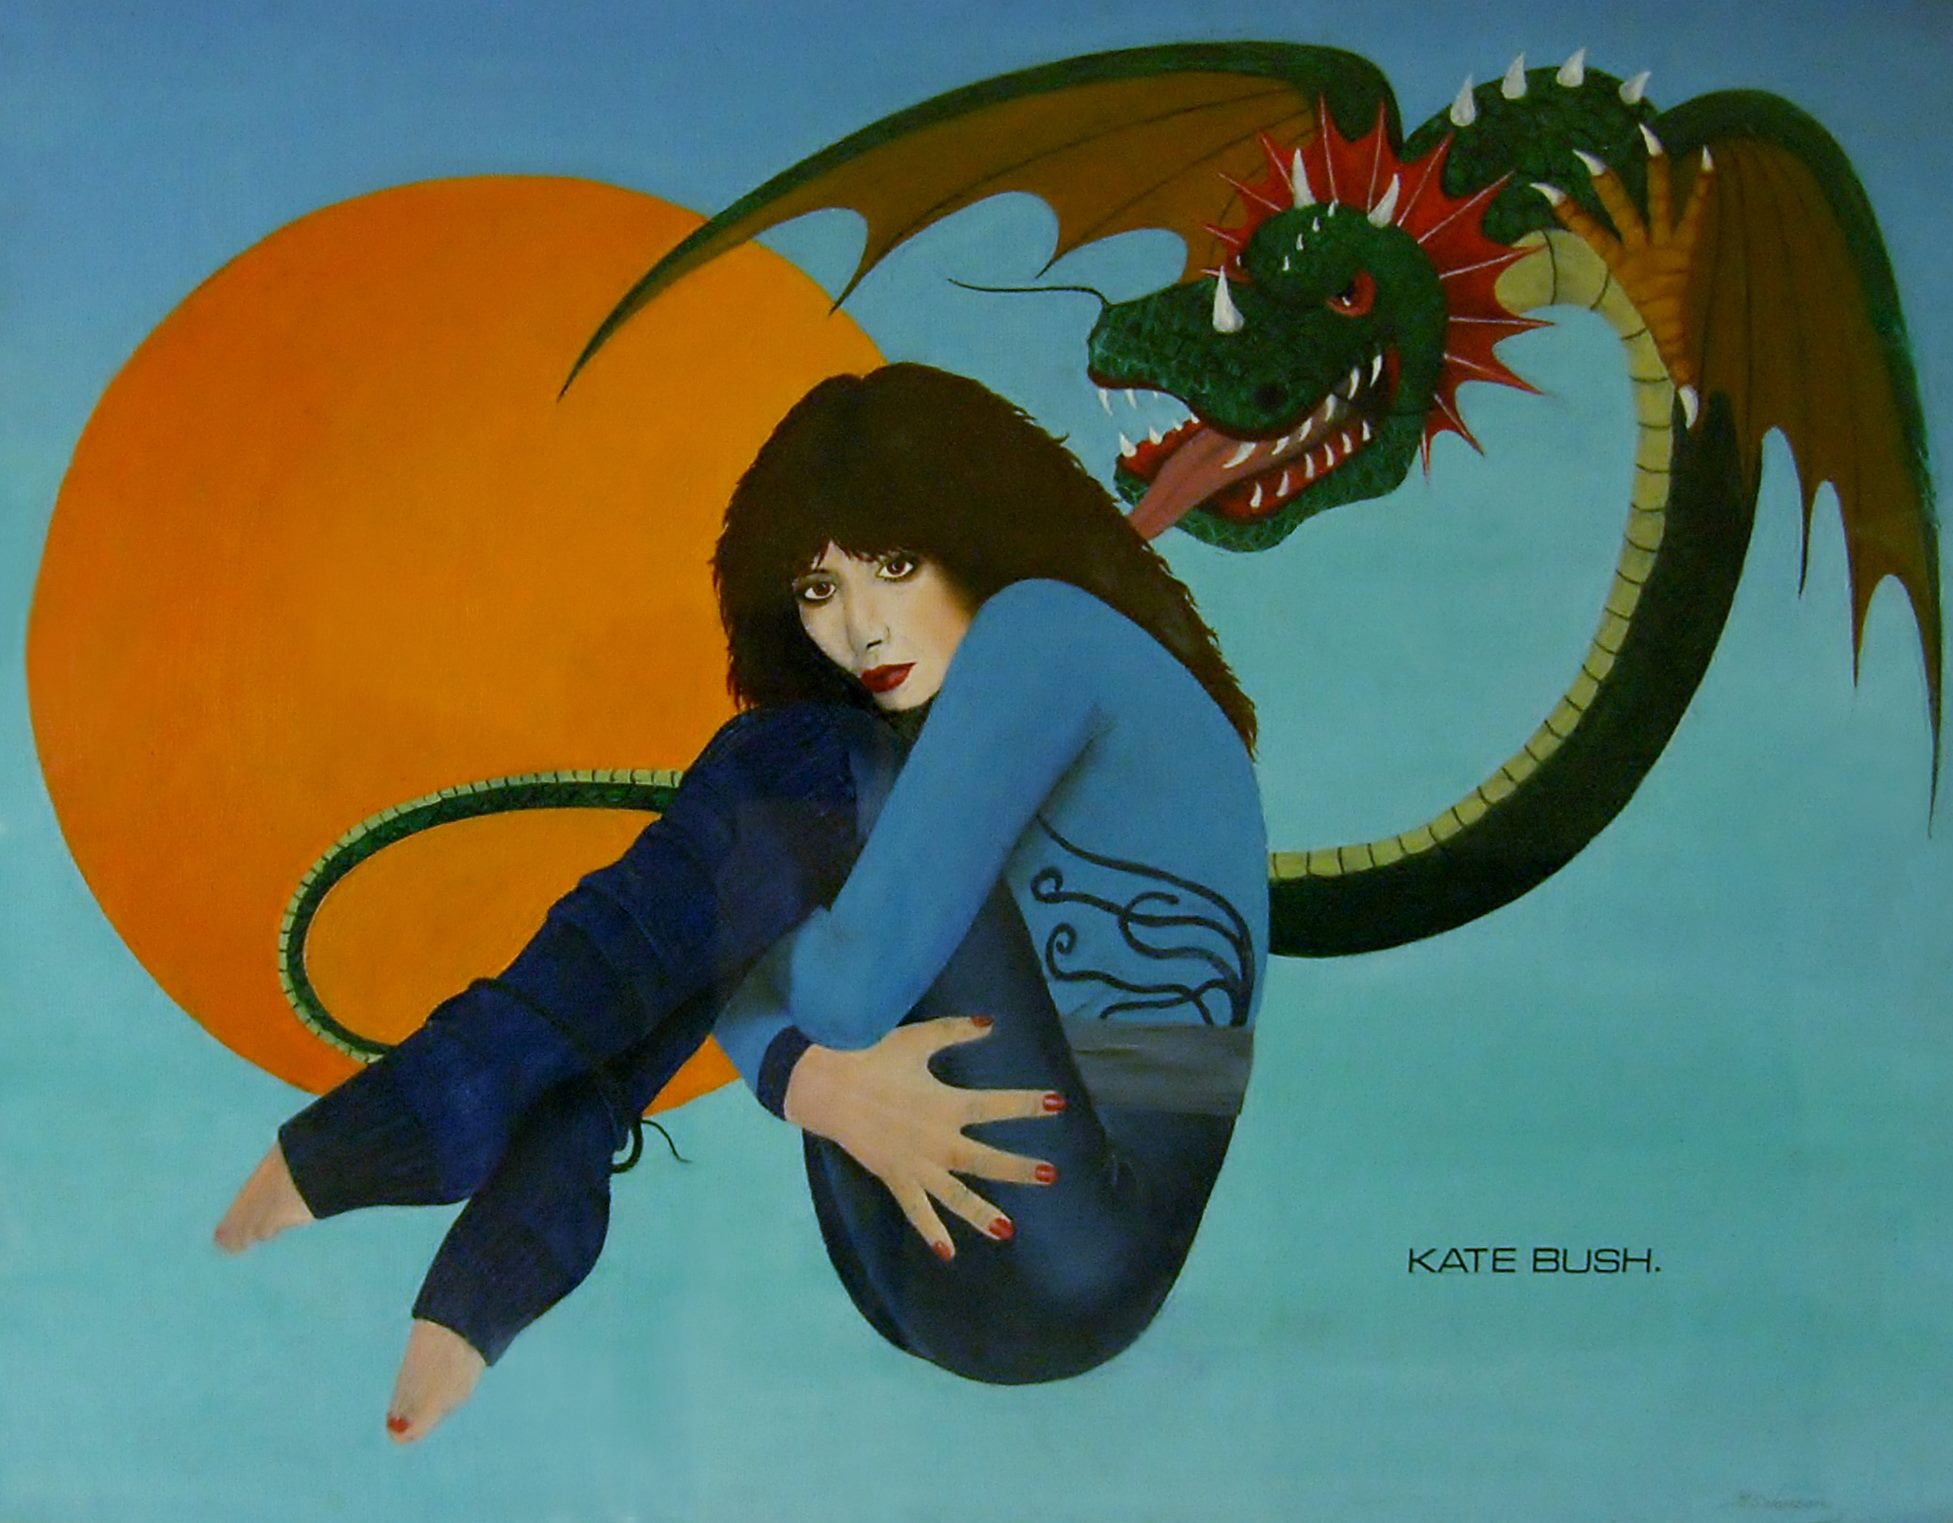 Brian Swanson - Kate Bush